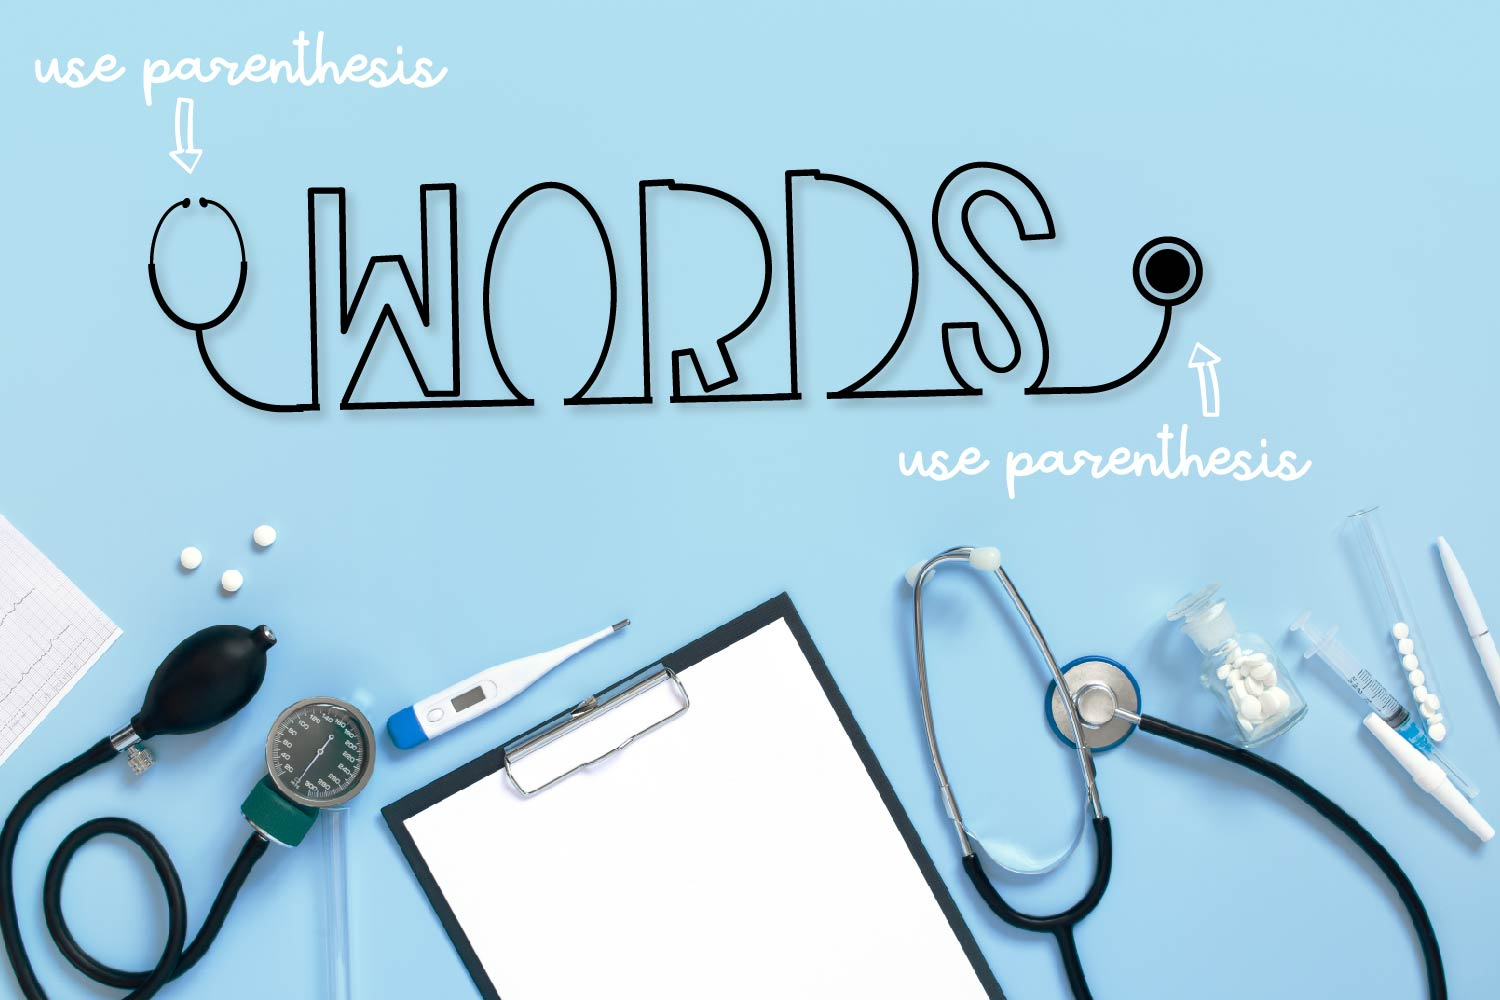 Clinicals - A Stethoscope Font Perfect for Nurses! example image 5